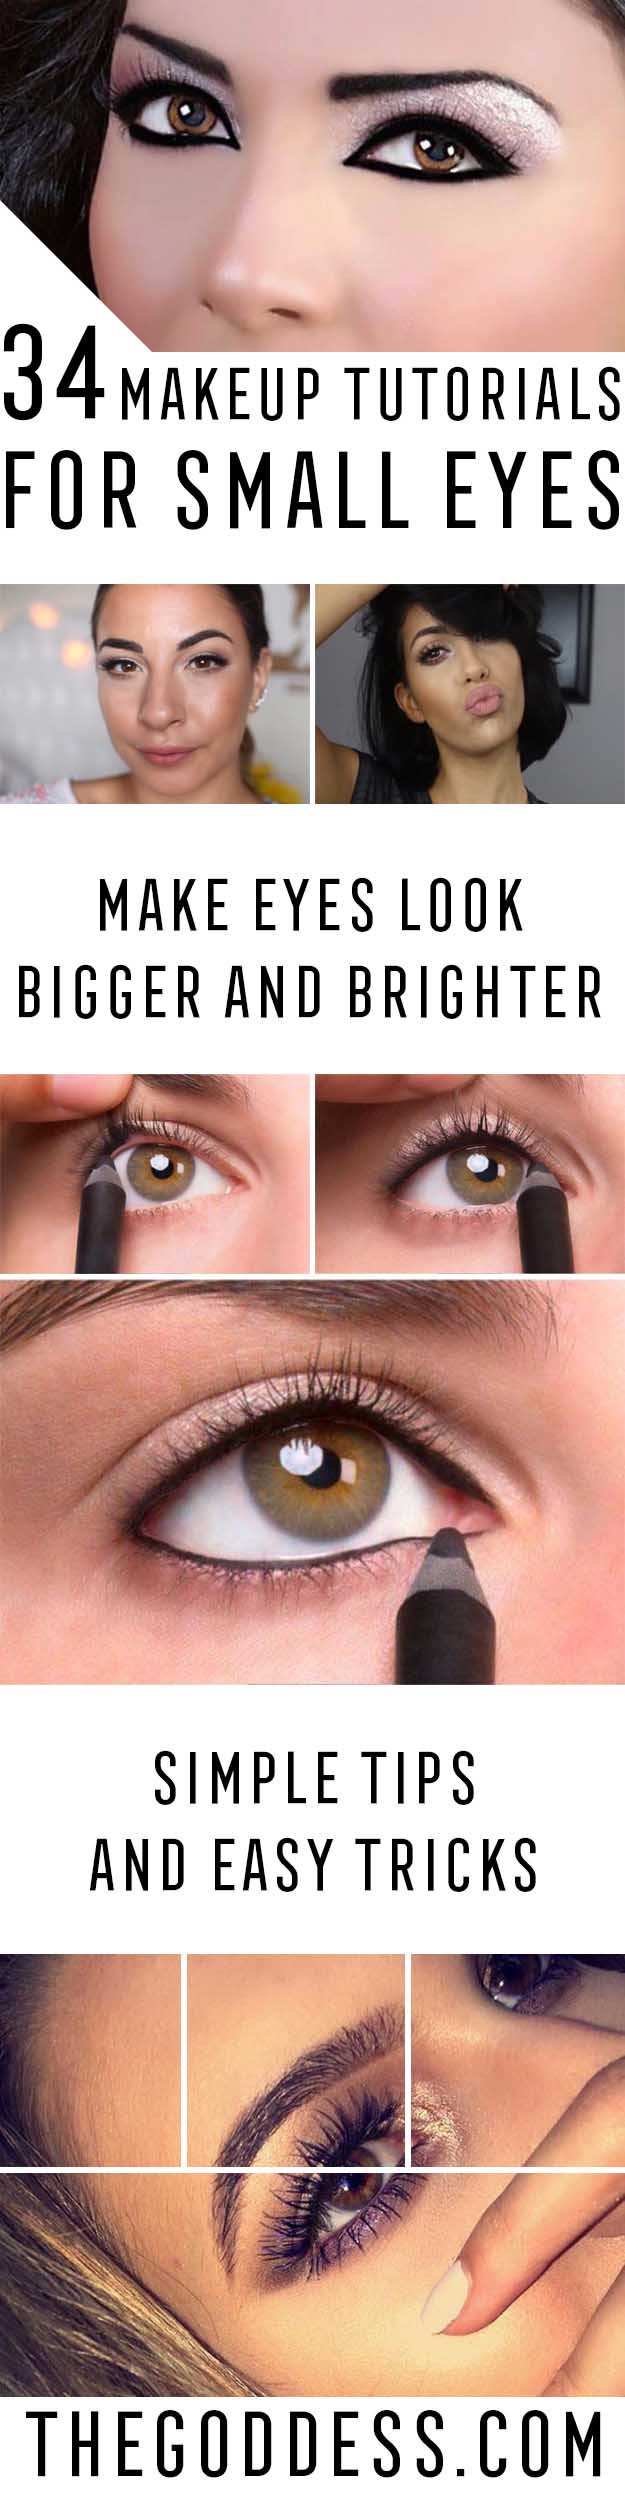 Eye Makeup To Make Small Eyes Look Bigger 34 Makeup Tutorials For Small Eyes The Goddess